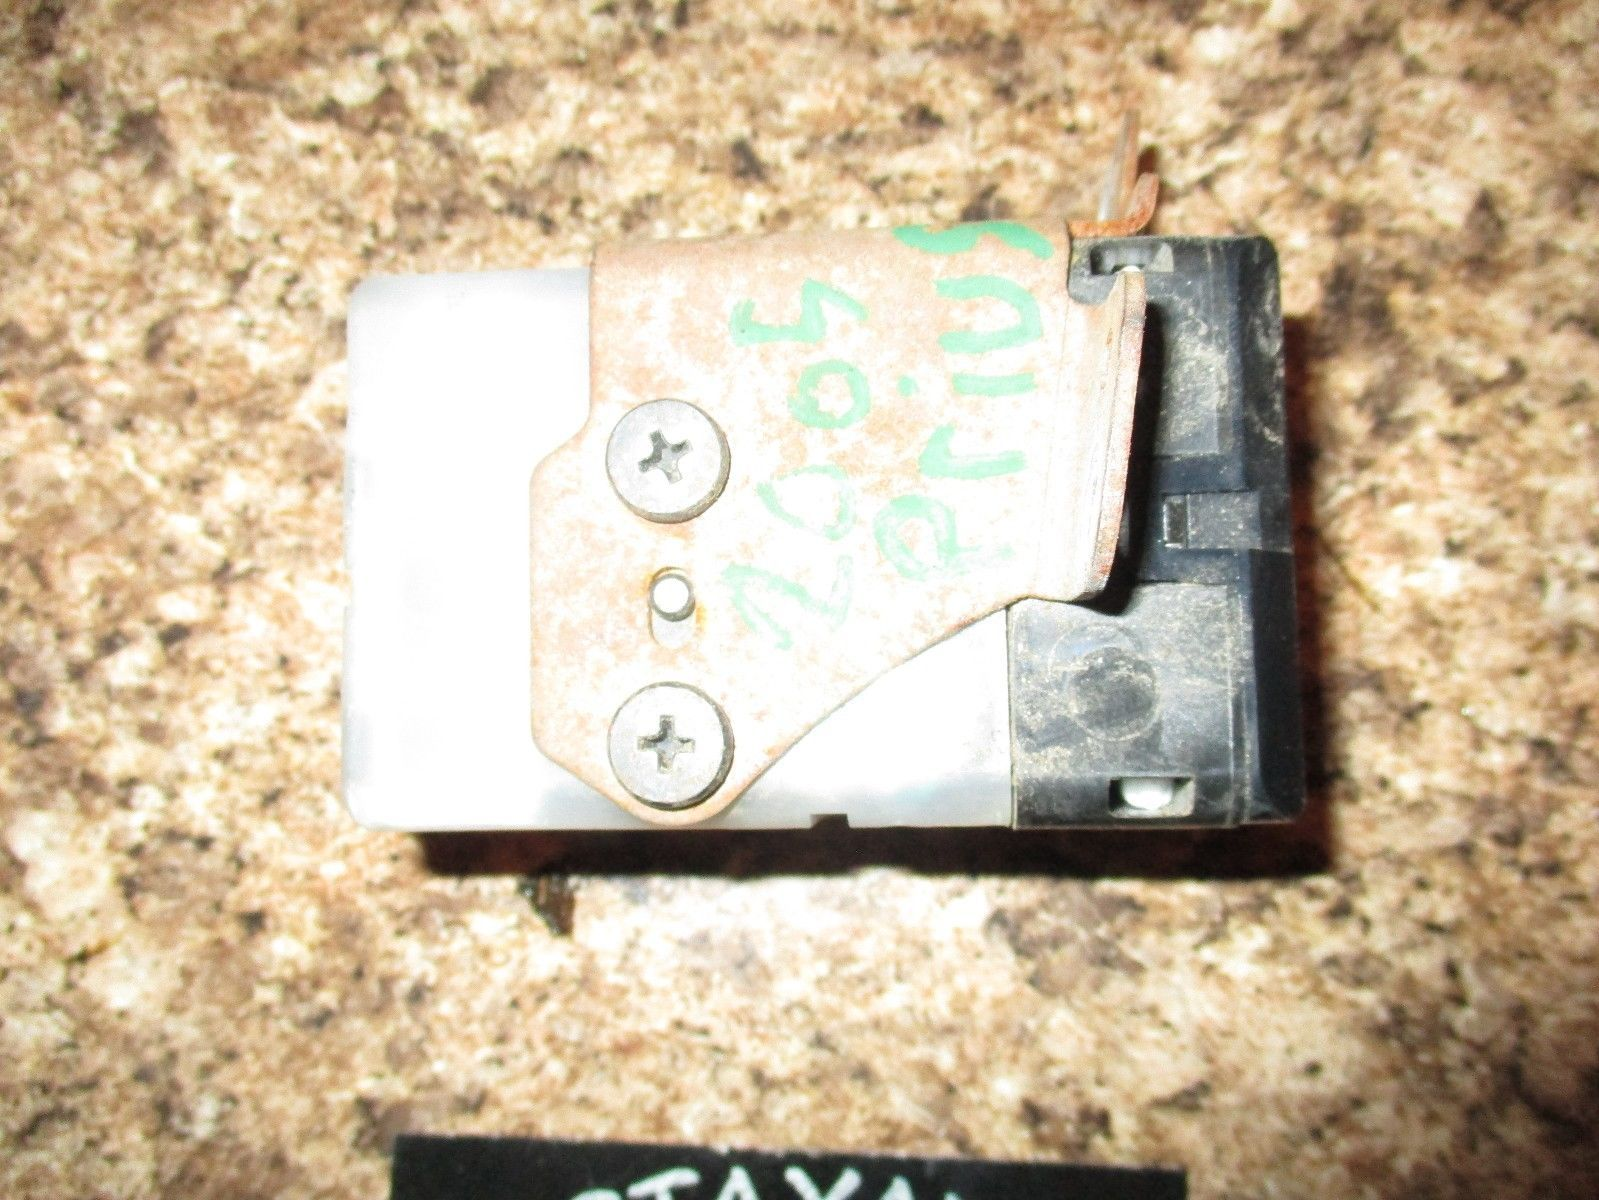 04-09 Toyota Prius Smart Key Slot Amplifier and 50 similar items